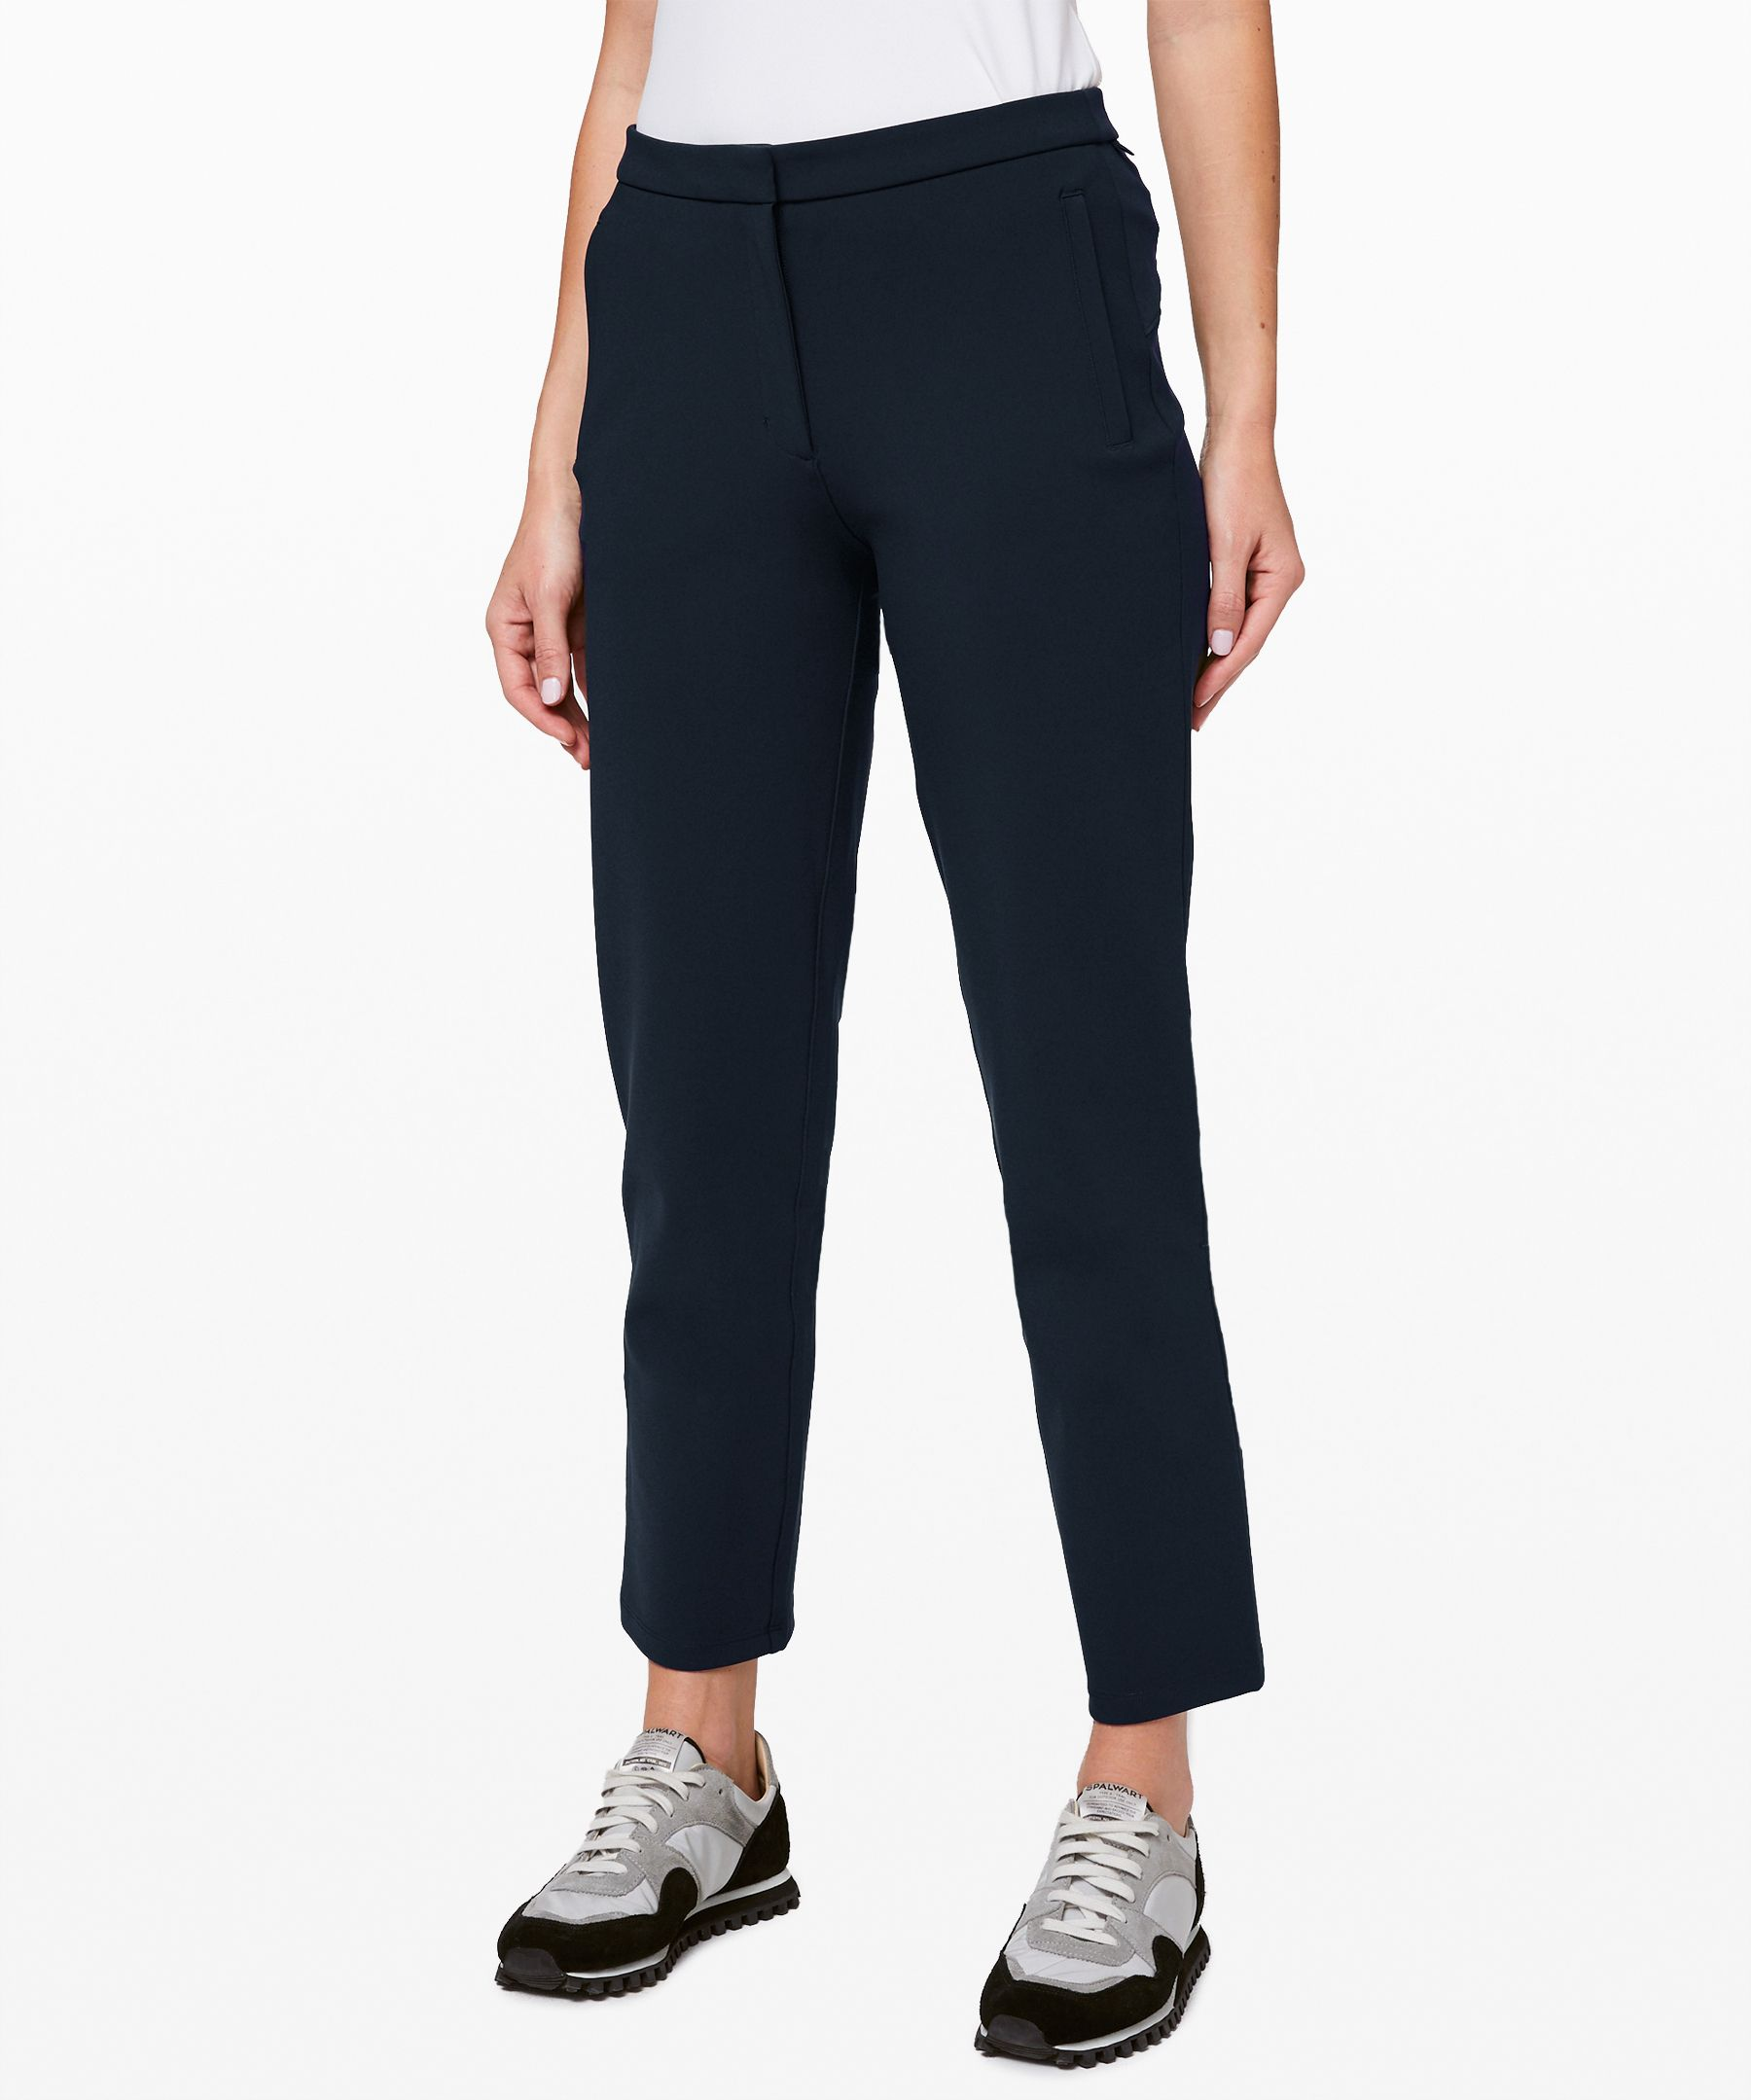 d90314b9b8 On The Move Pant *Online Only 28